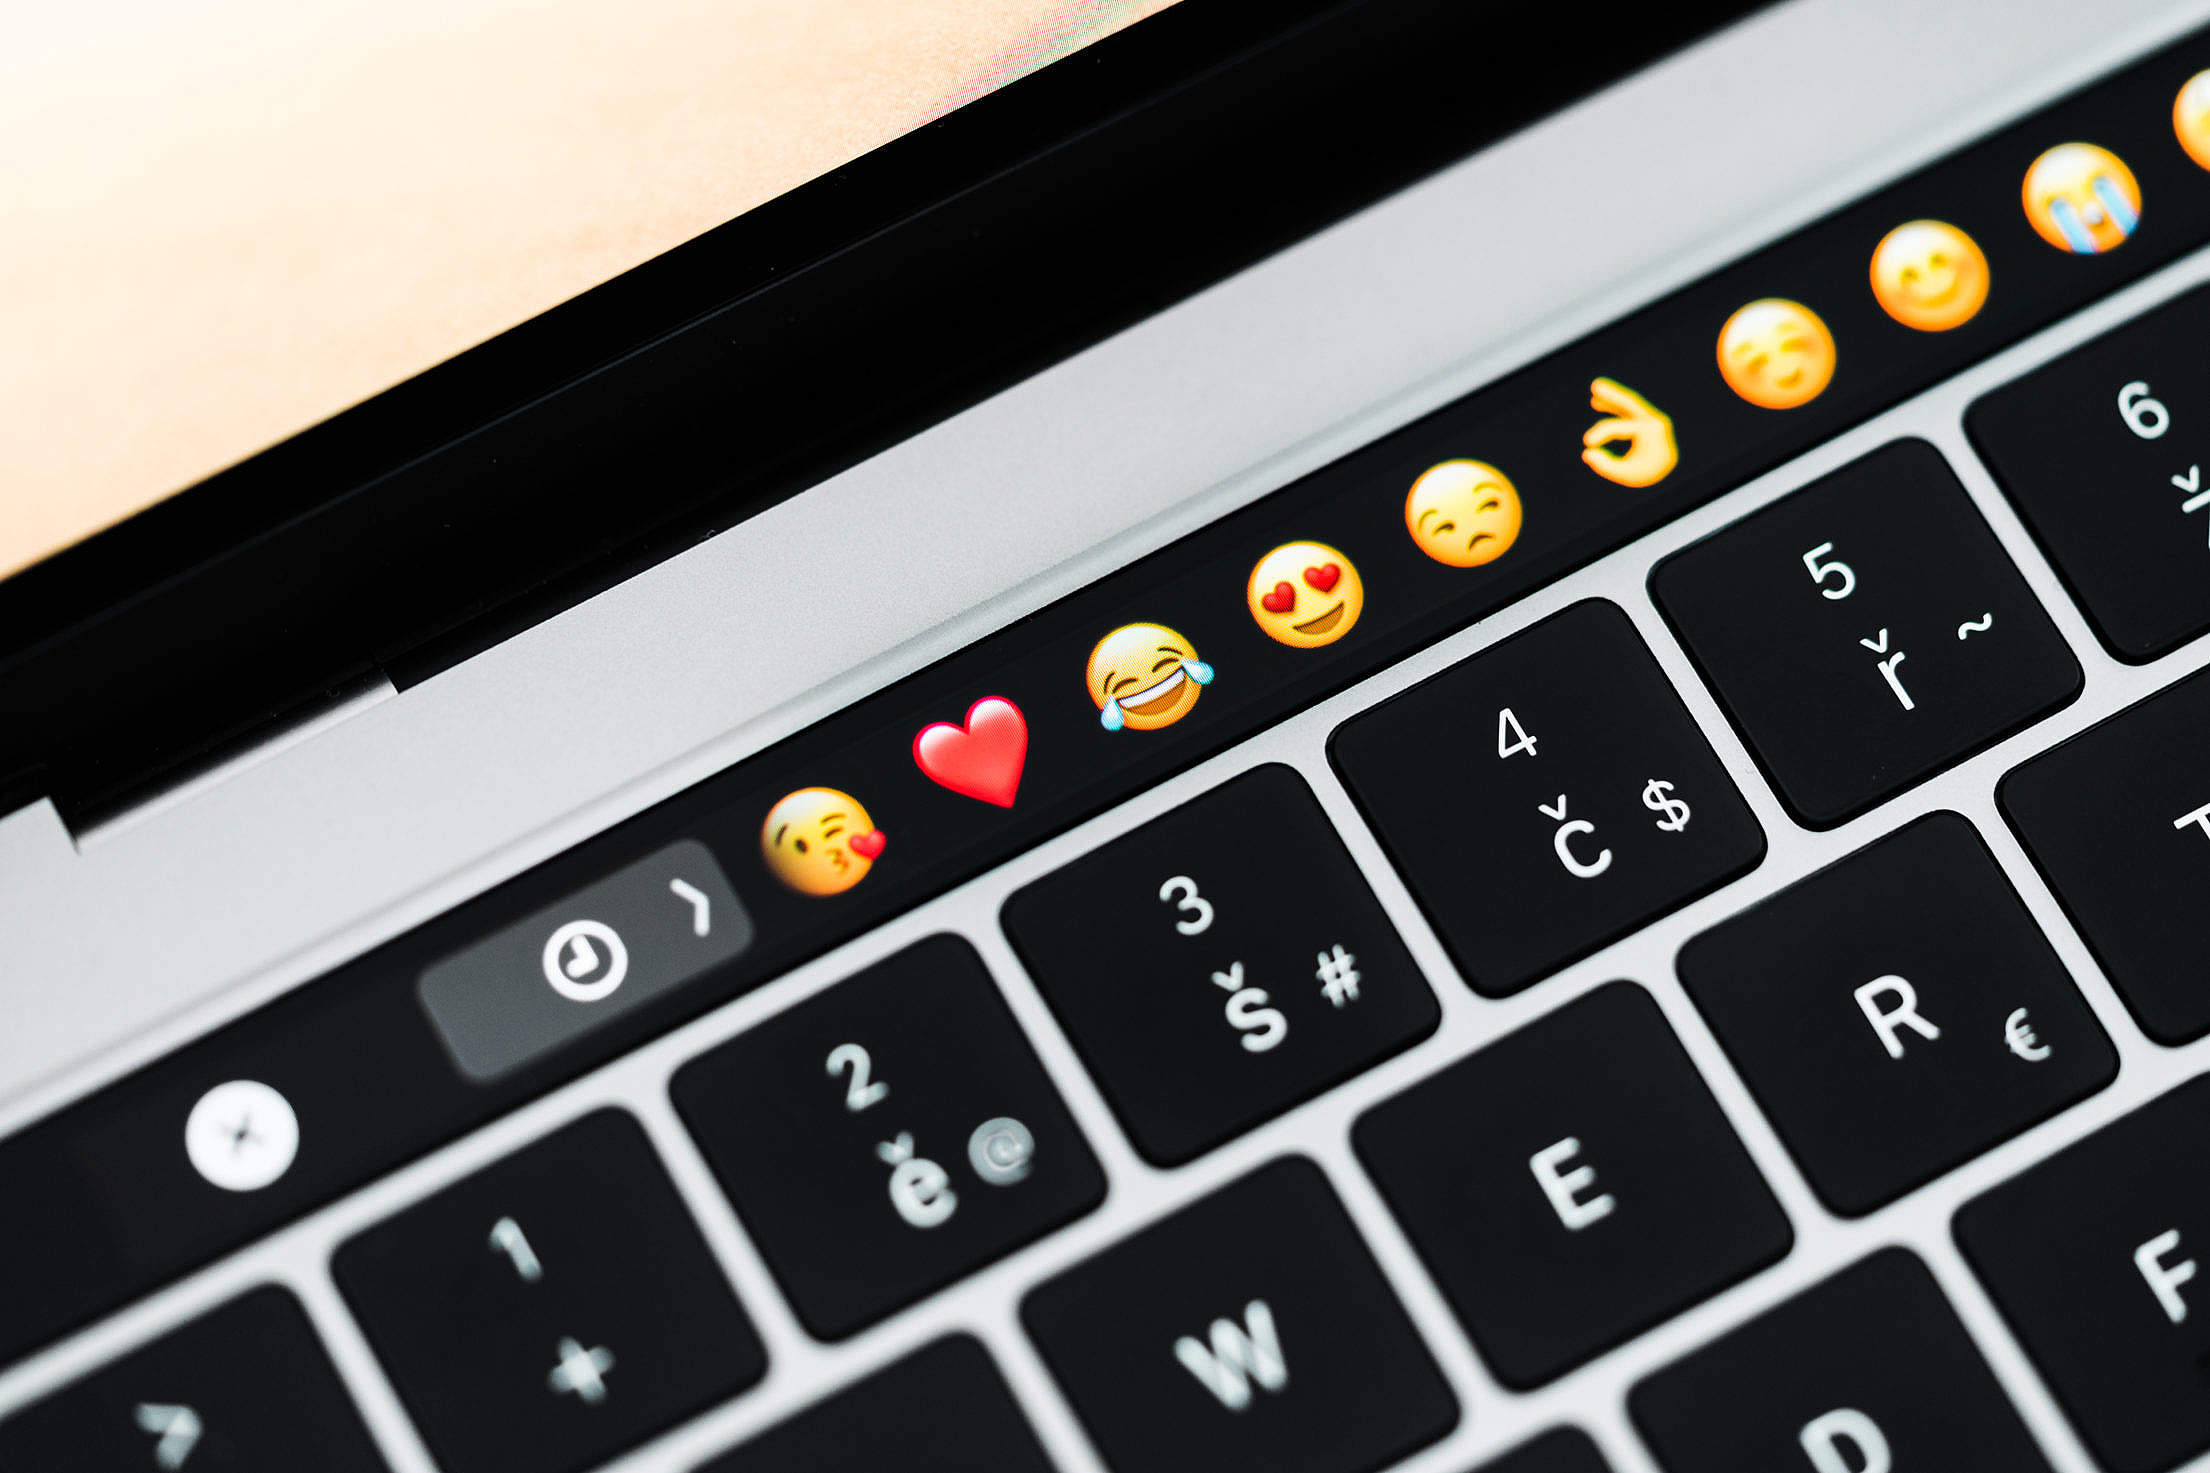 Download MacBook Pro Touchbar Free Stock Photo